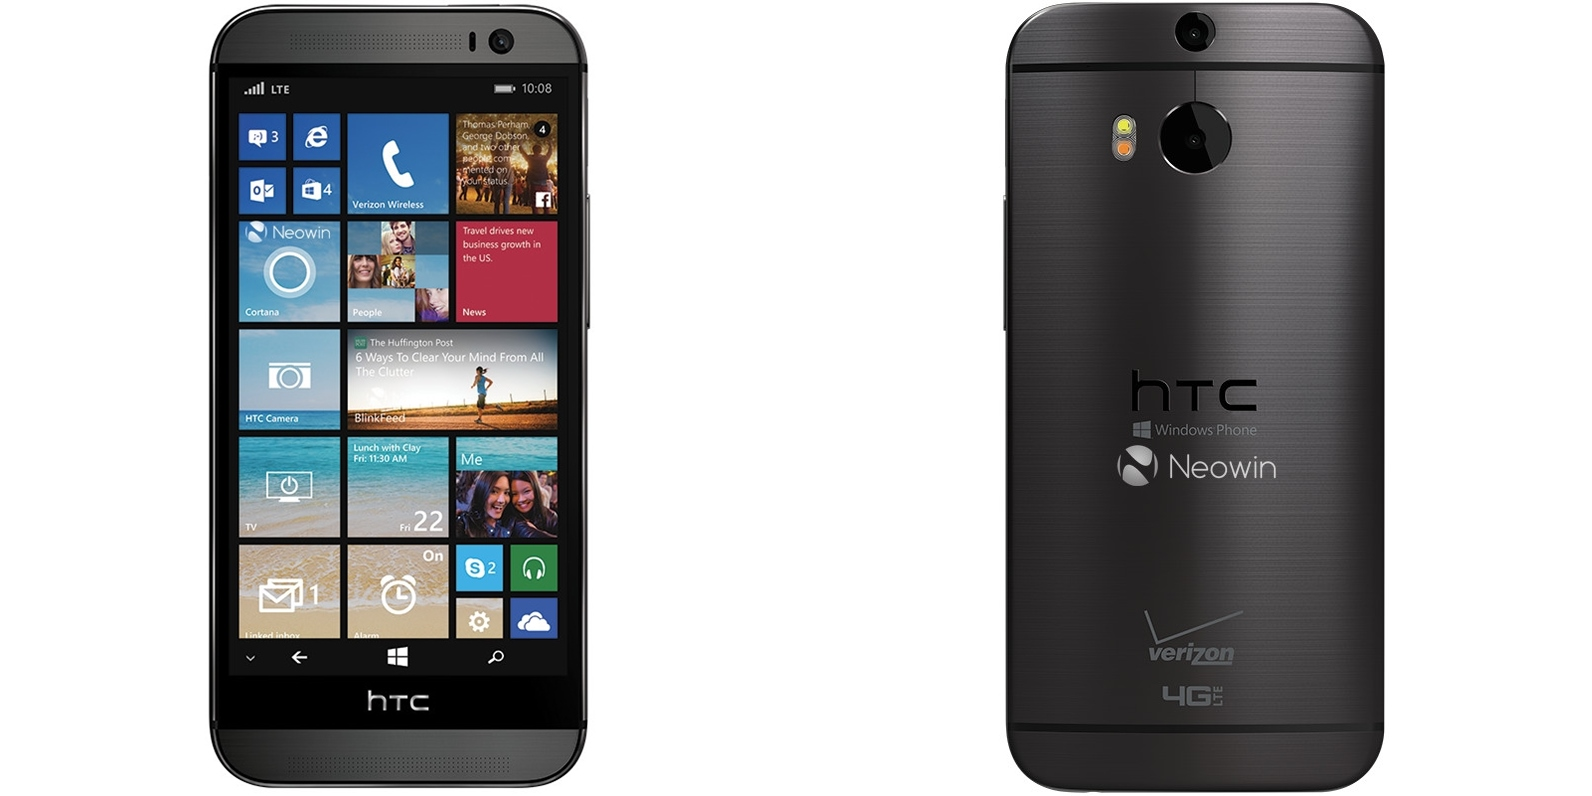 HTC One M8 for Windows 1 horz